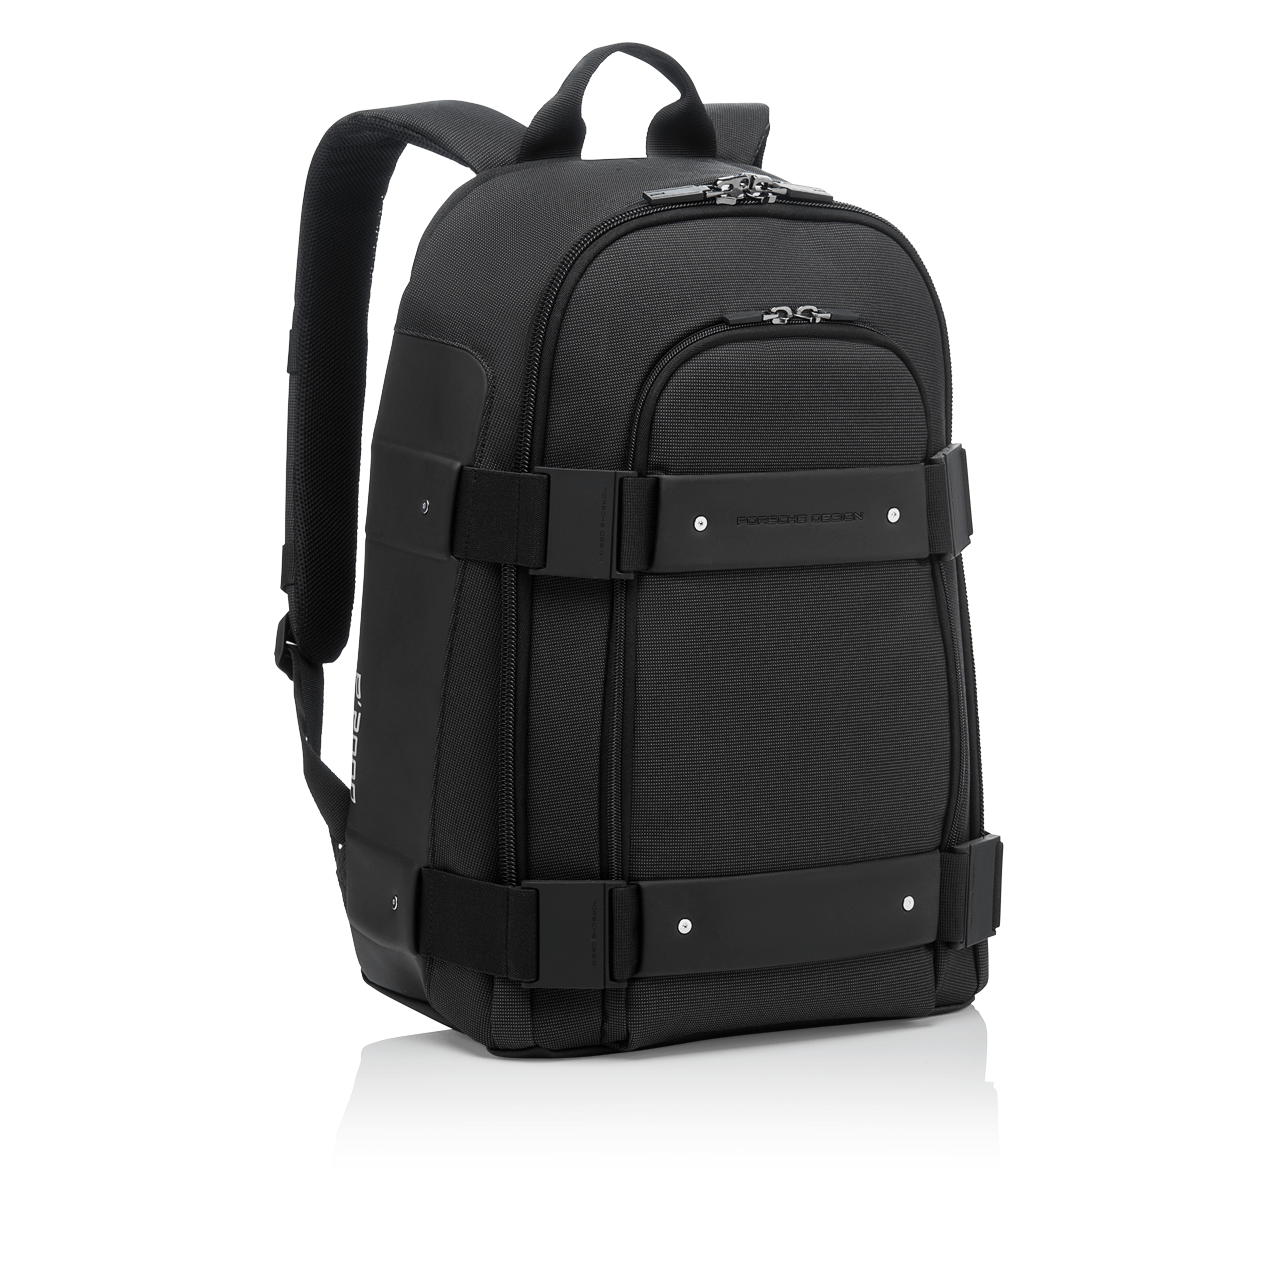 CARGON 2.5 BACKBAG M - фото 1